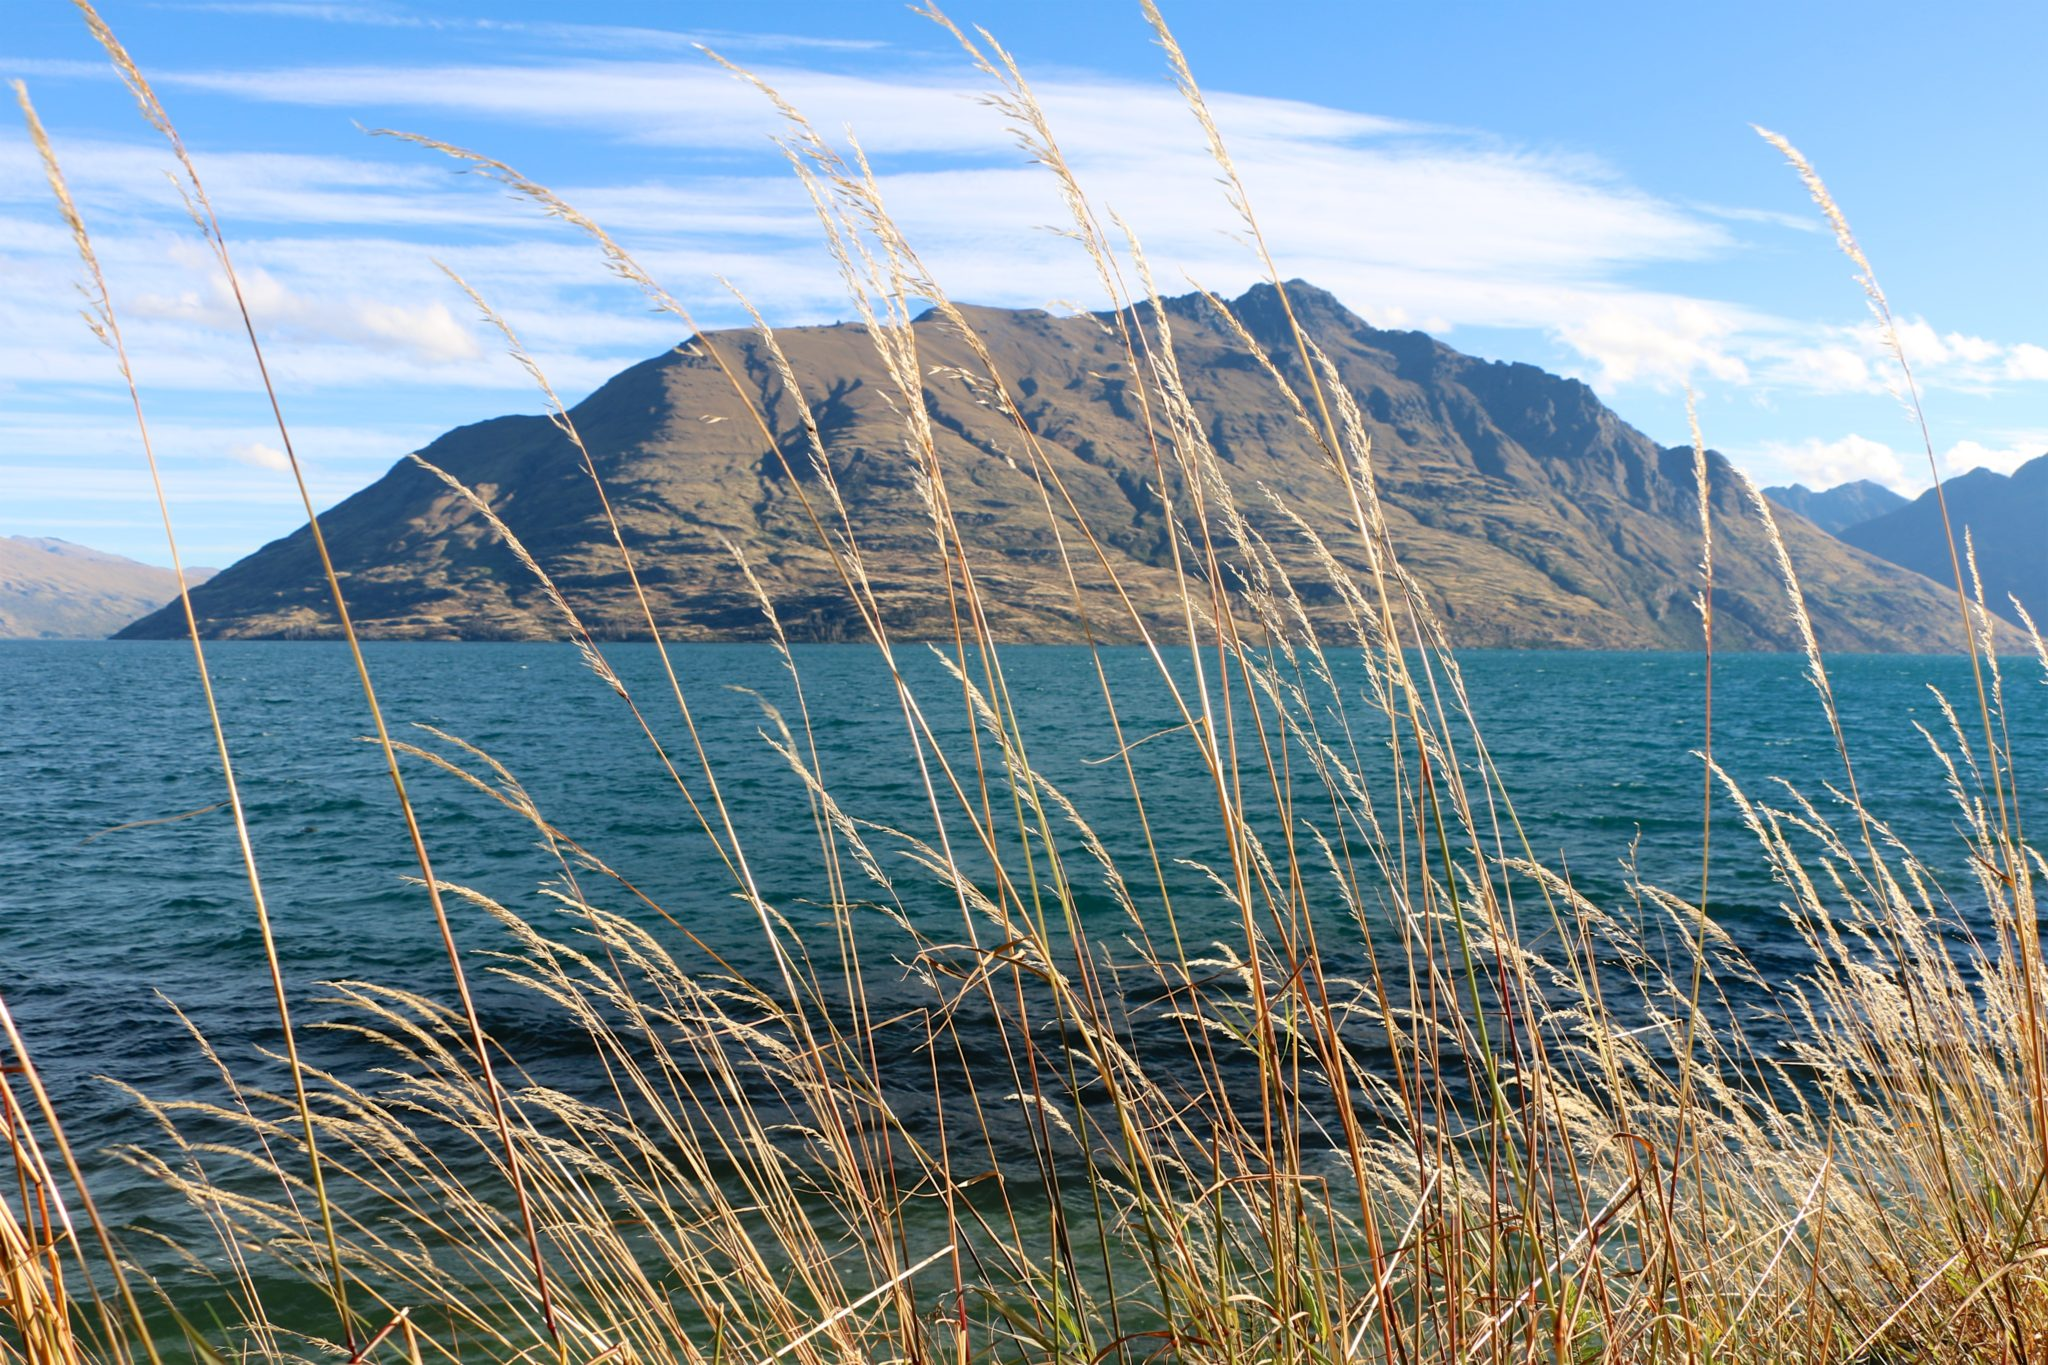 Queenstown to Glenorchy: A Scenic Drive